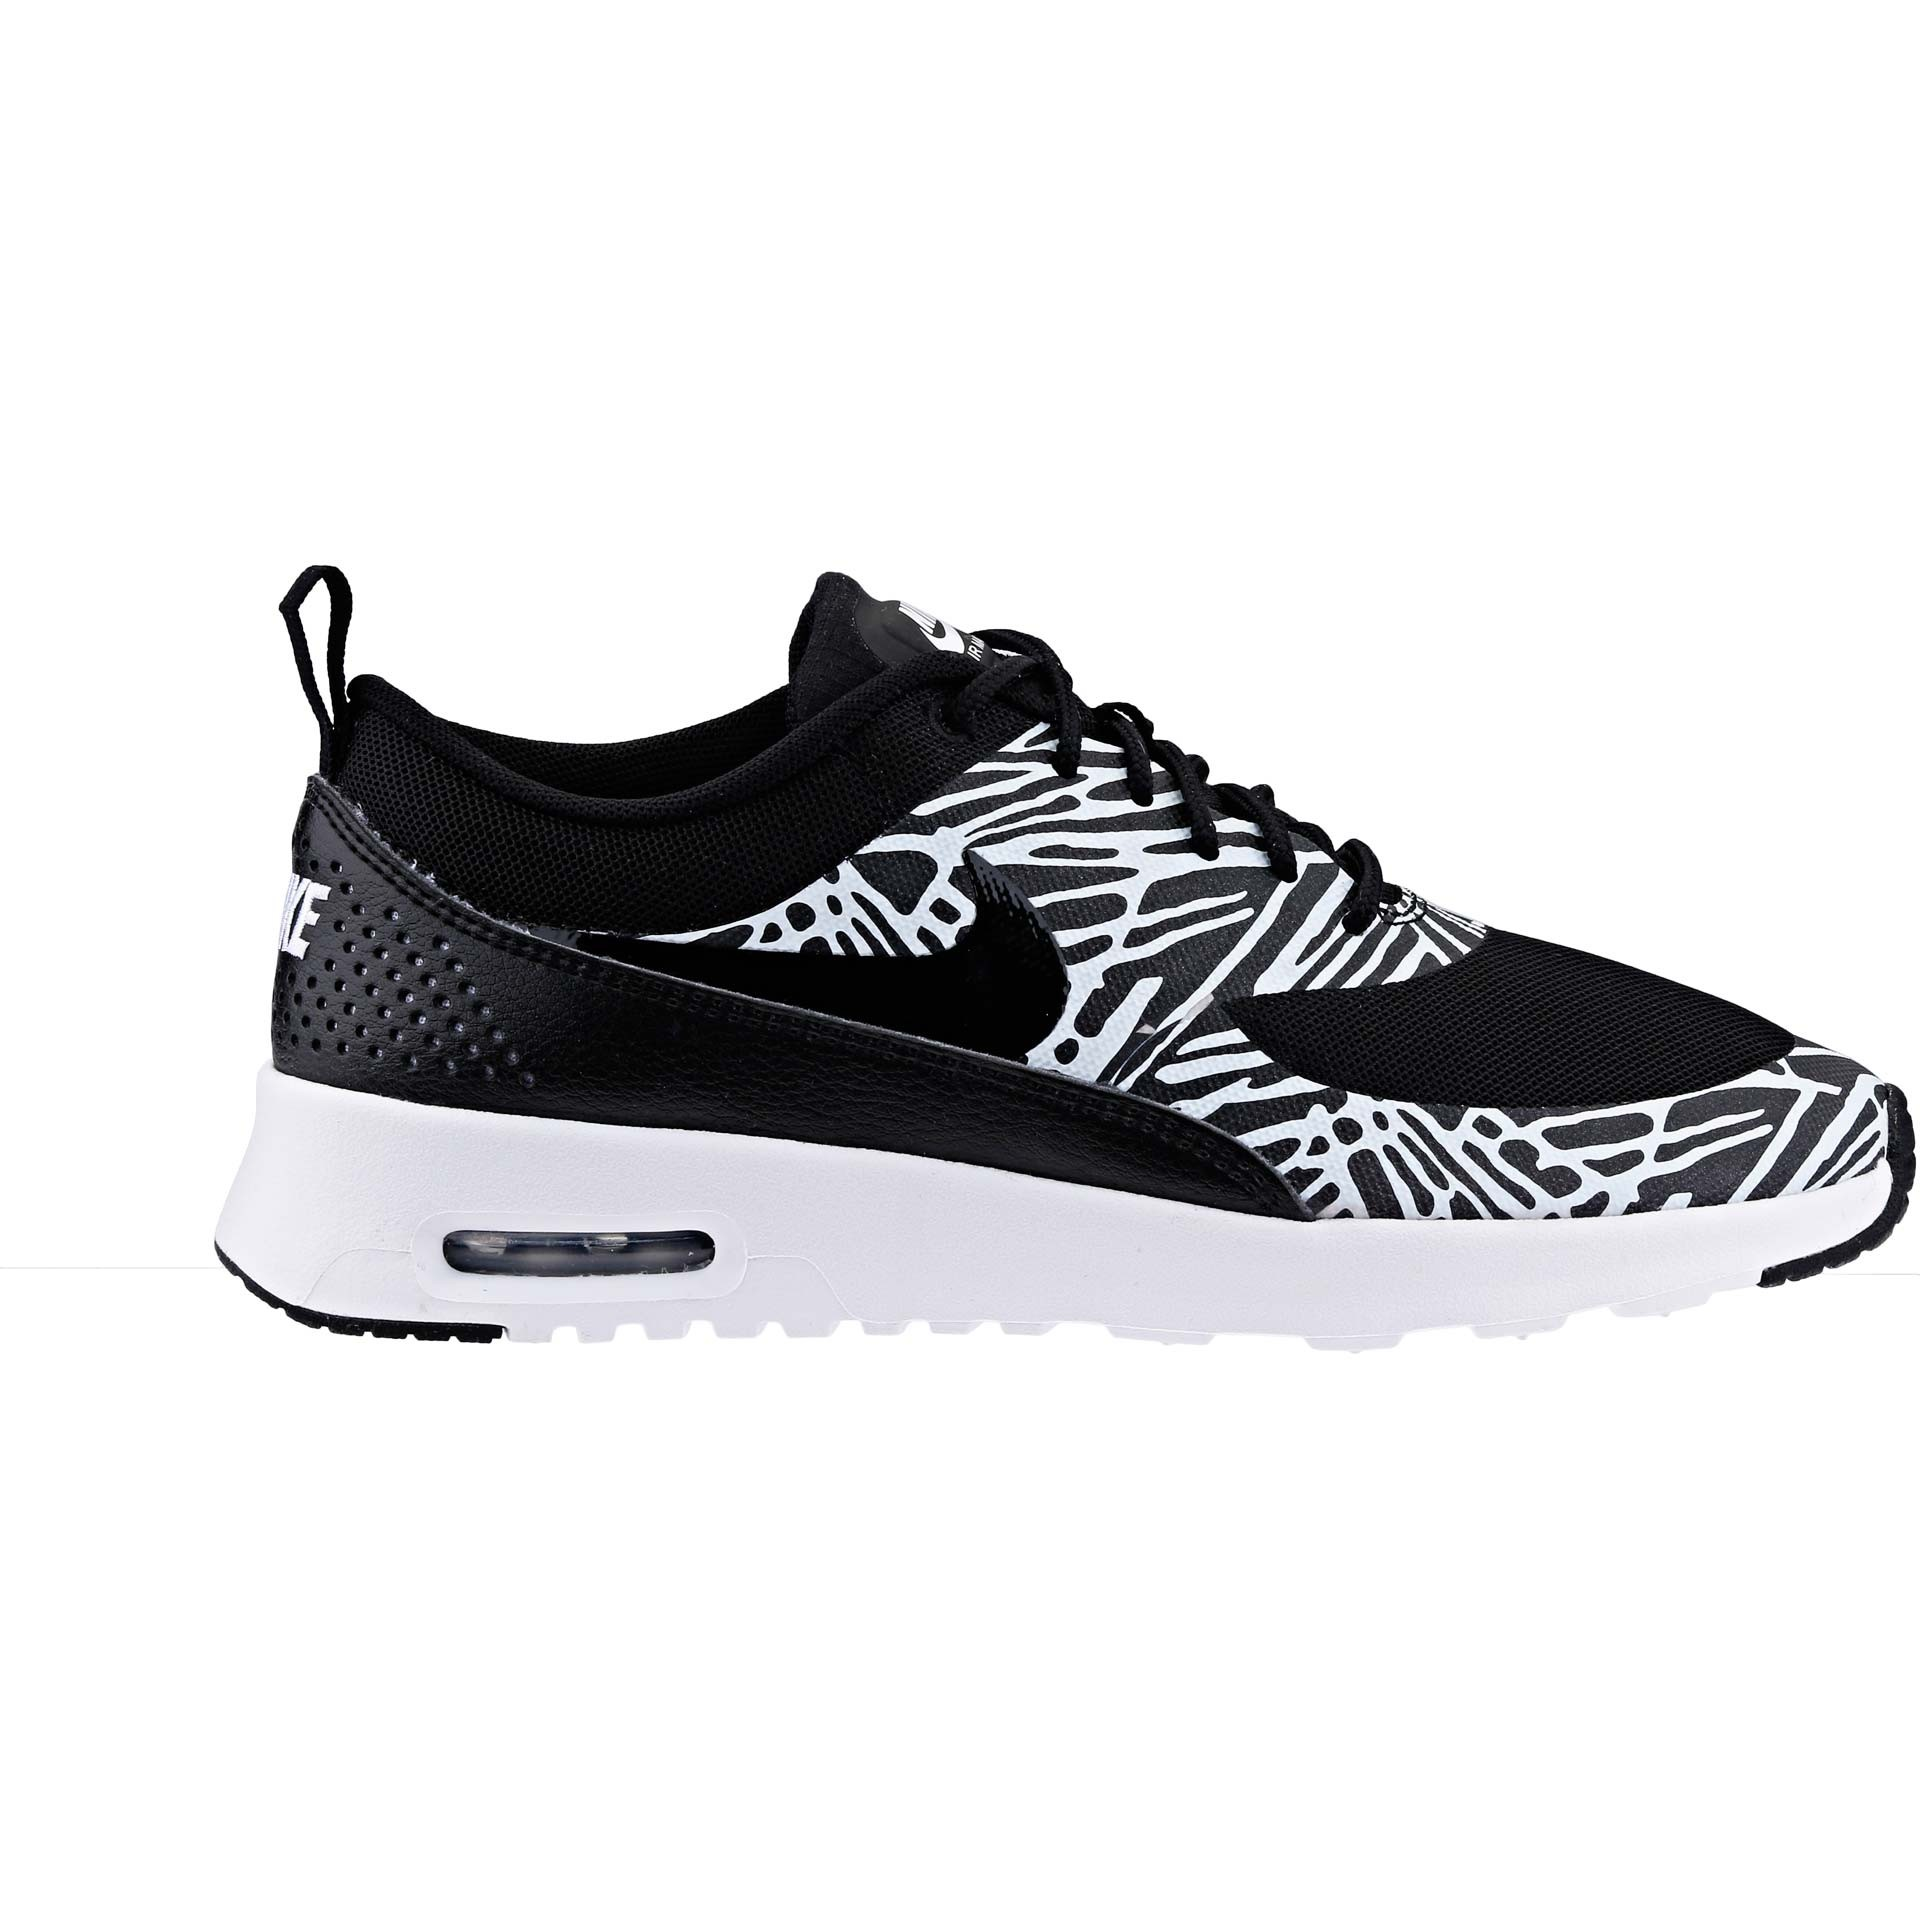 Women's Nike Air Max Thea Print Running Shoes Black/White/Metallic Silver 599408-010